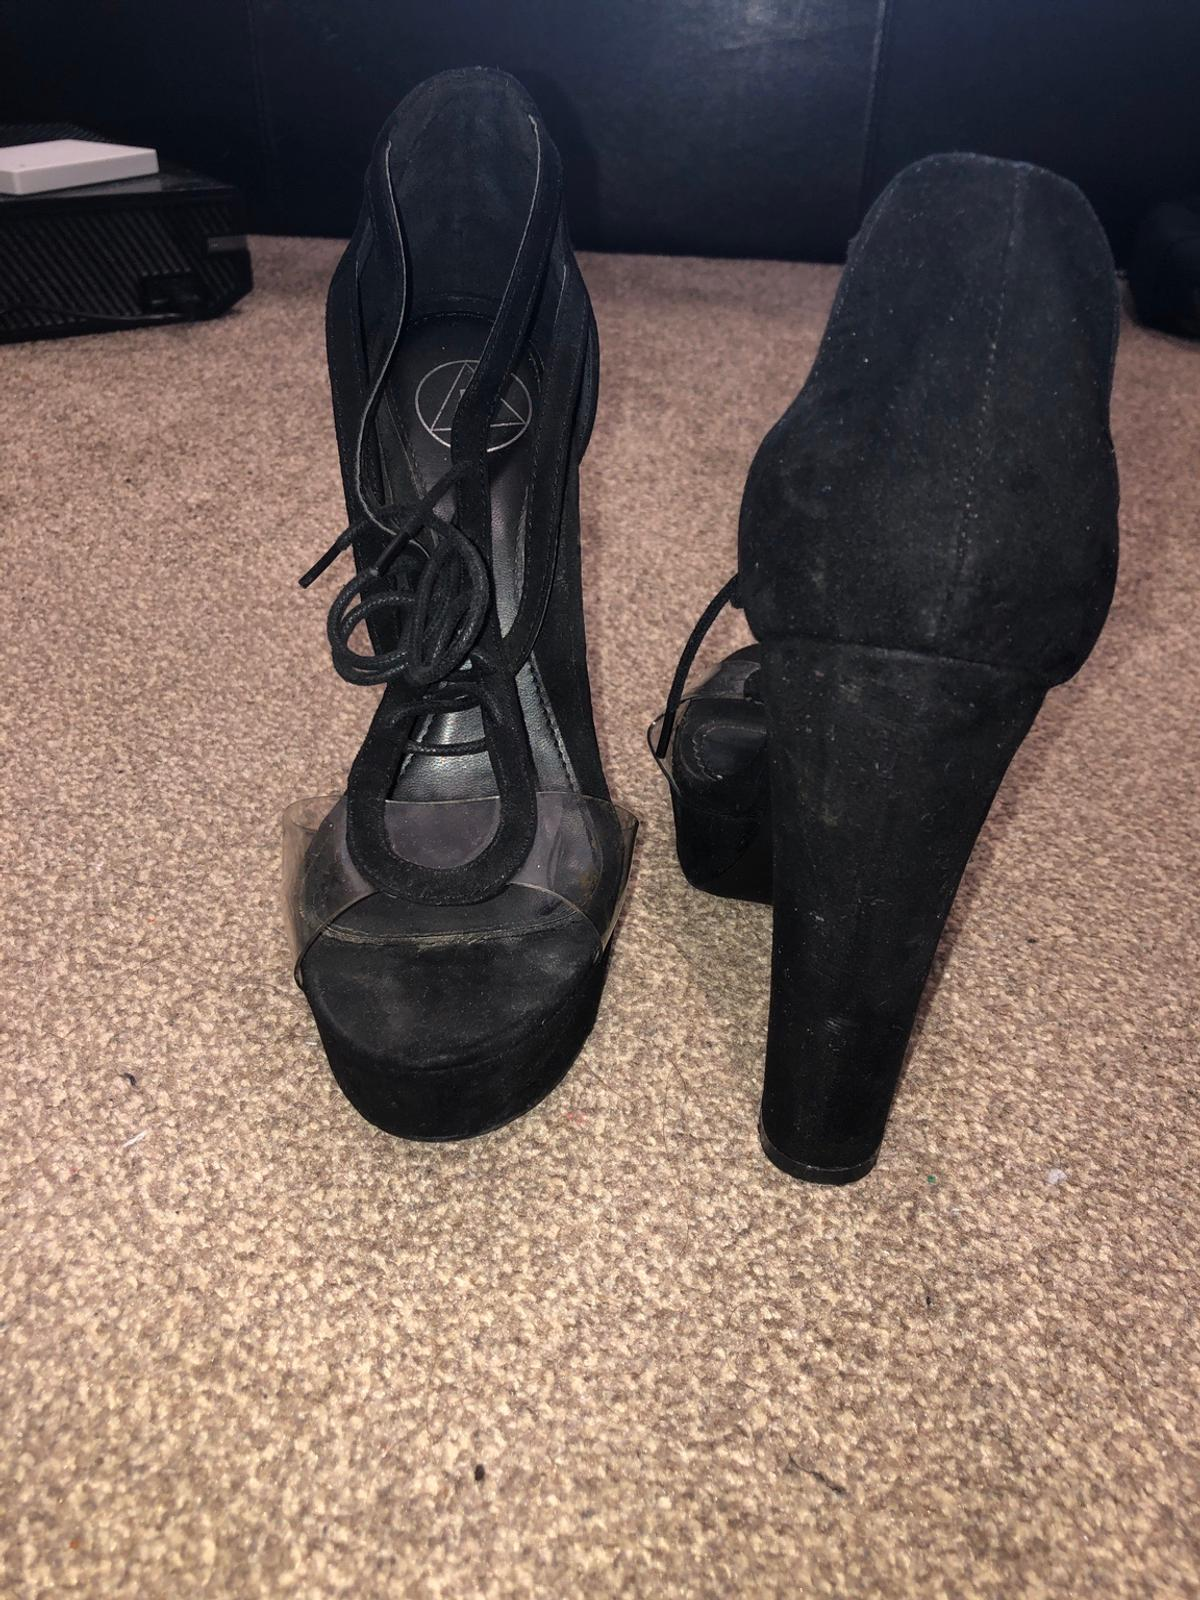 Brand new Worn once Size 5 Fitted shoe